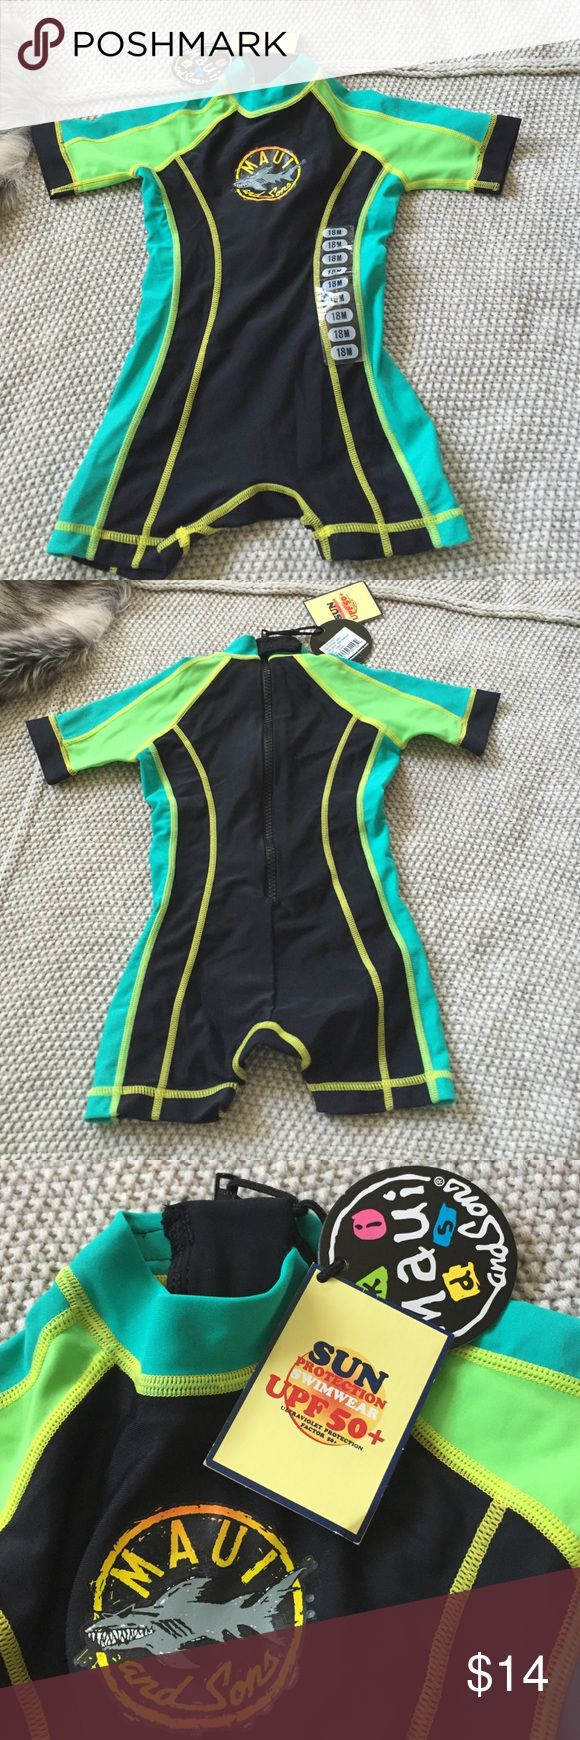 New NWT Maui and Sons rashsuit swimsuit 18 mo New with tags attached rashsuit/swimsuit in size 18 months. Sun protection swimwear UPF 50+. Ultraviolet protection factor 50+. Excellent condition Maui and Sons Swim One Piece